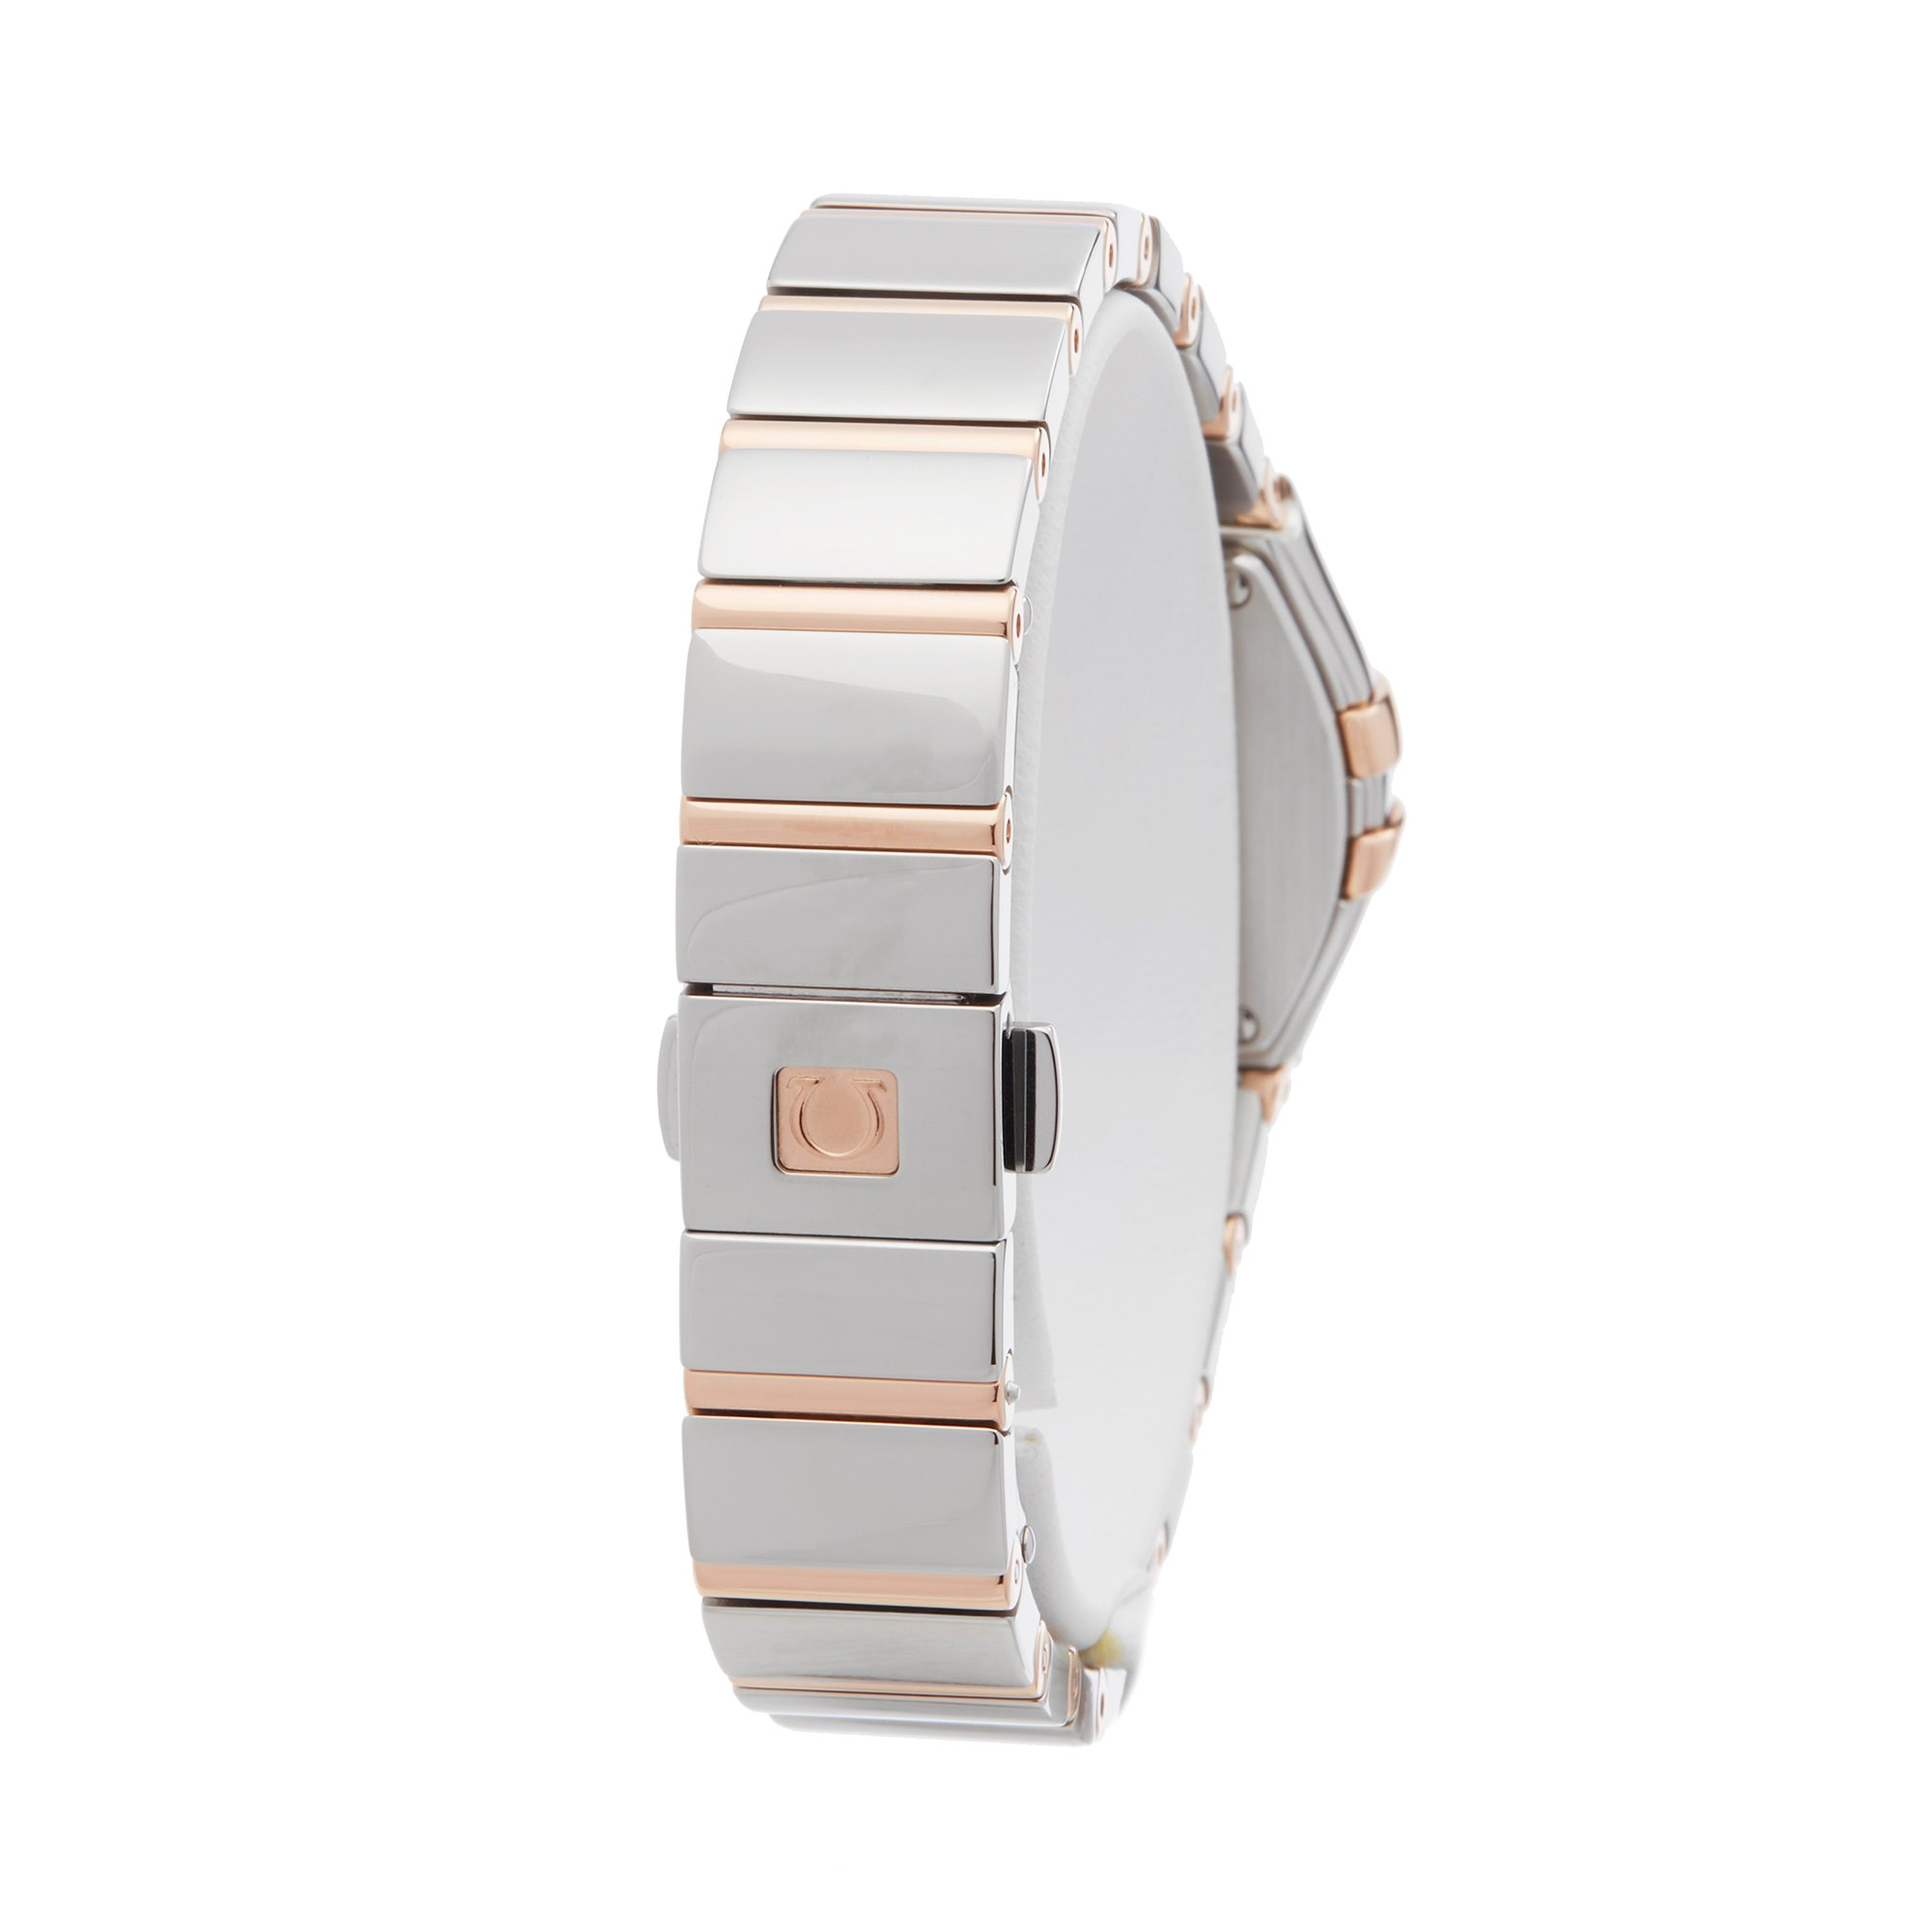 Omega Constellation Diamond Mother Of Pearl Stainless Steel & Rose Gold 123.25.24.60.55.005